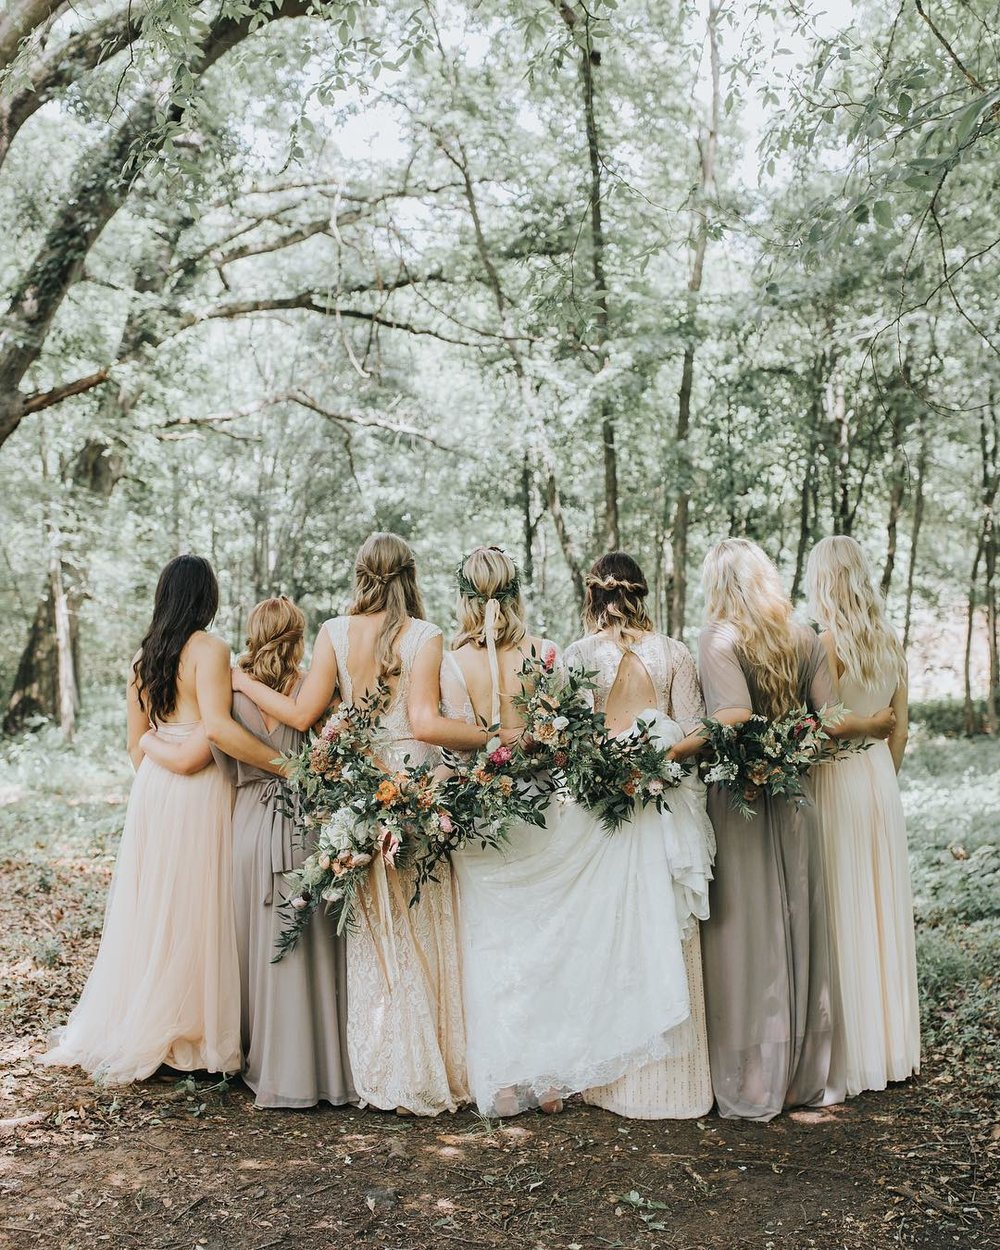 4 Well Travelled Bride Mallory Sparkles Wedding Photographer Byron Bay.jpg